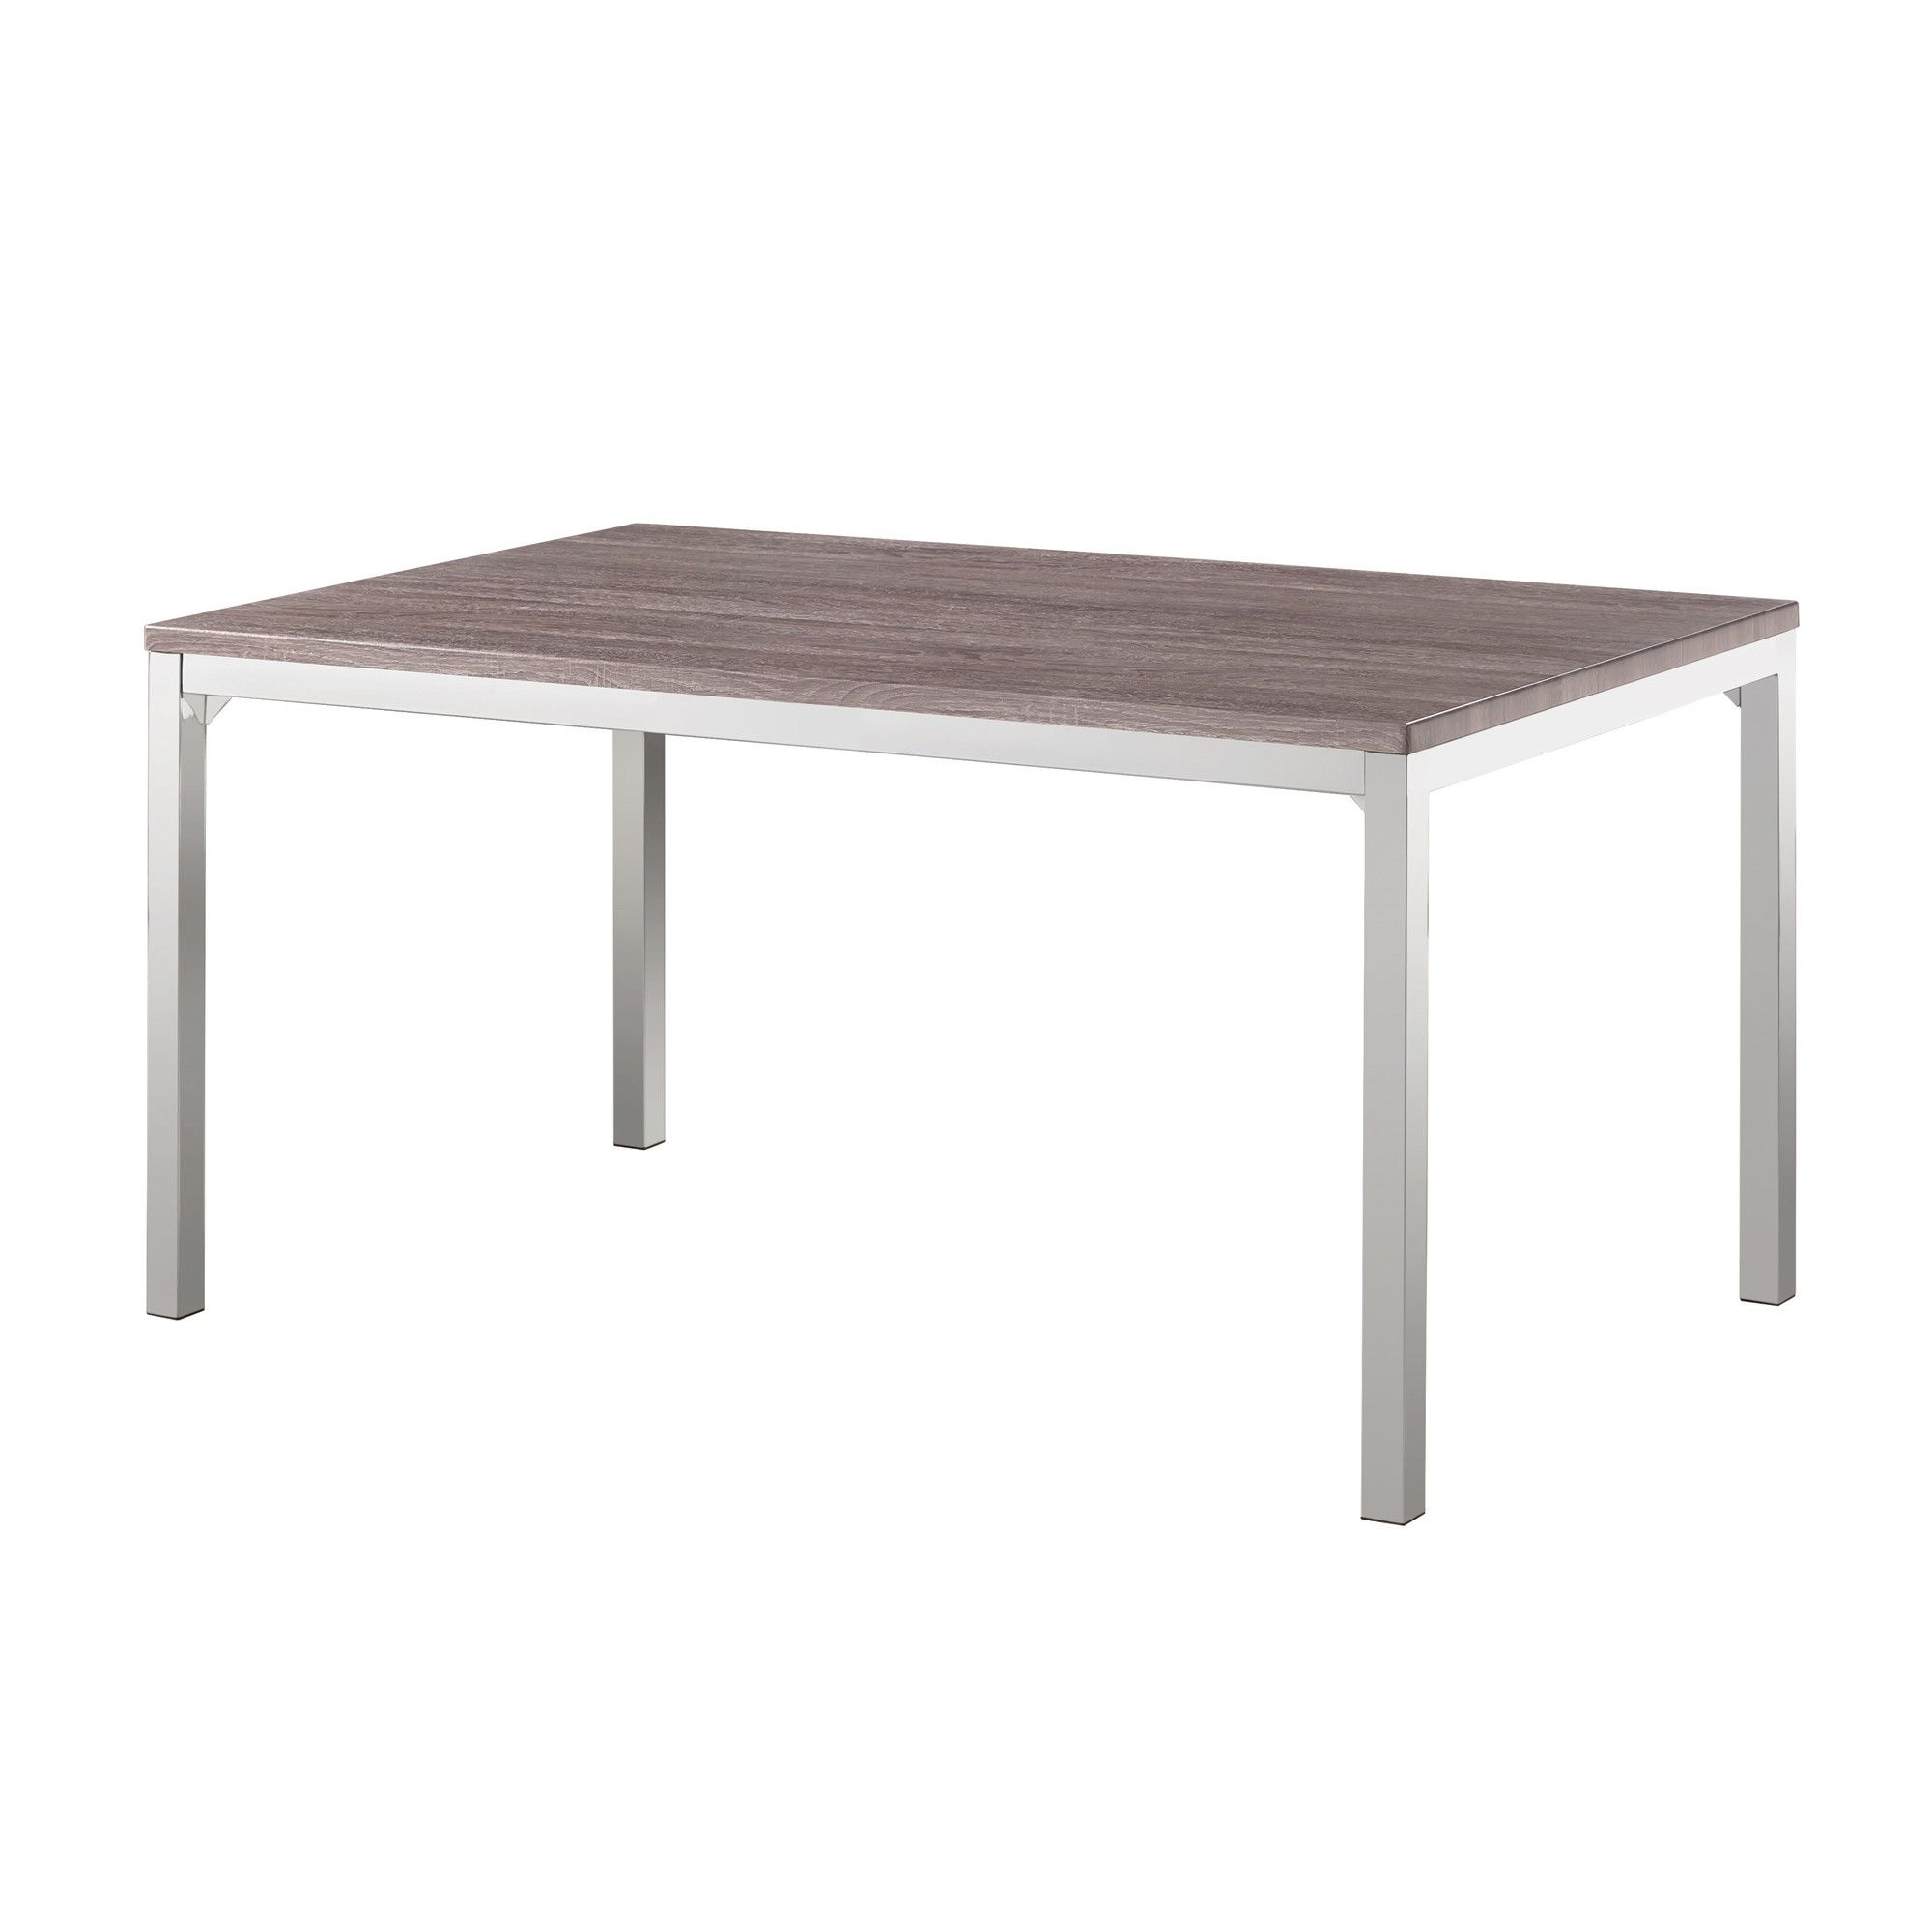 Wildon Home ® Peterson Dining Table